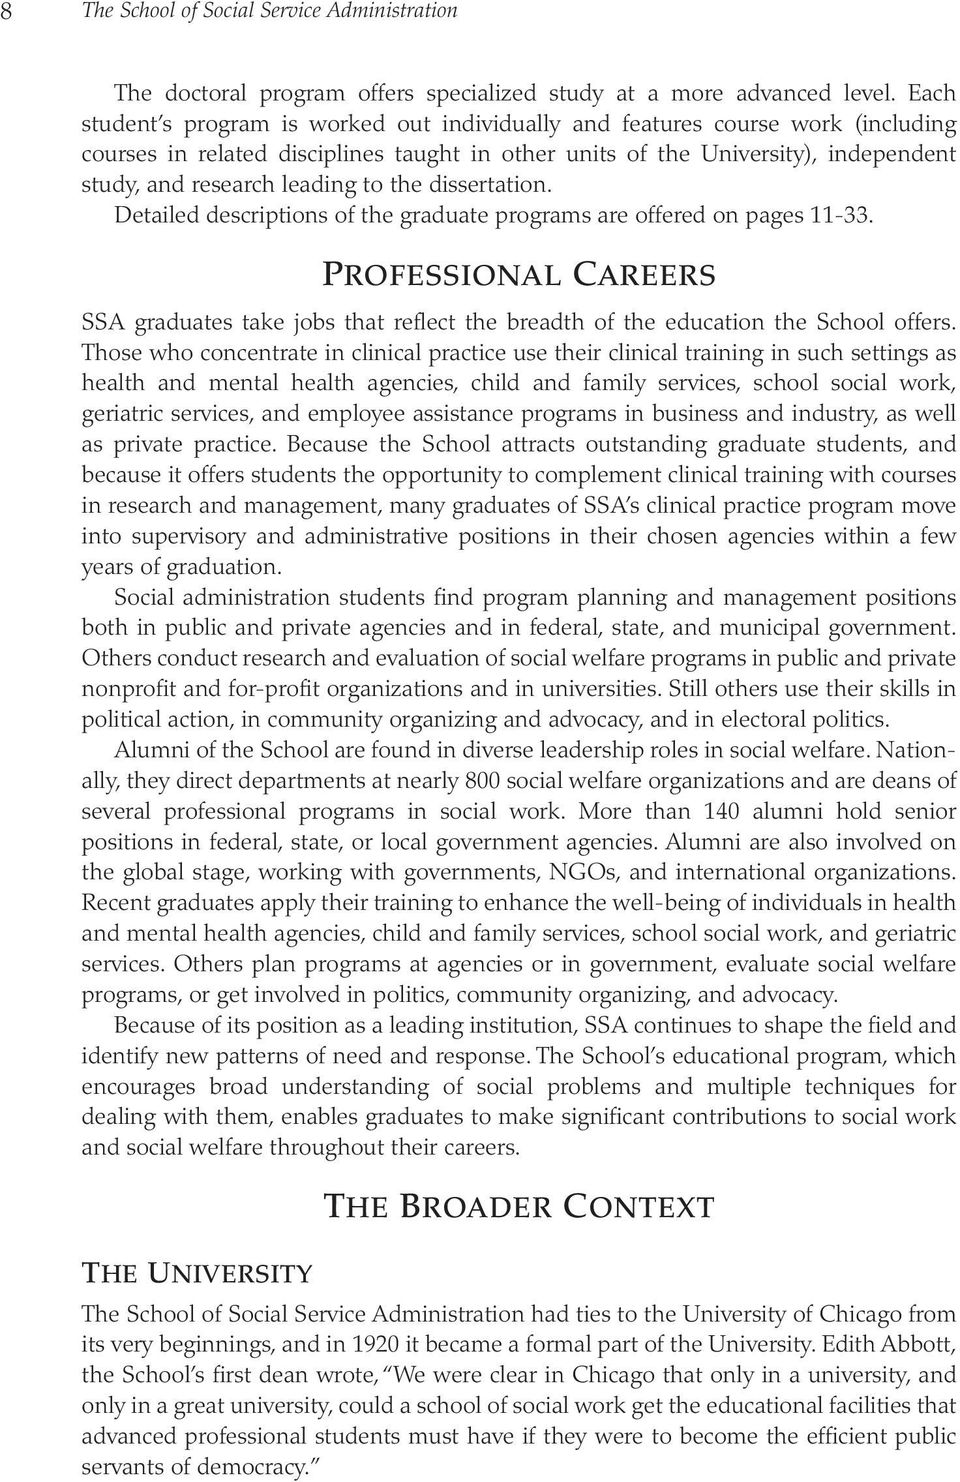 to the dissertation. Detailed descriptions of the graduate programs are offered on pages 11-33.